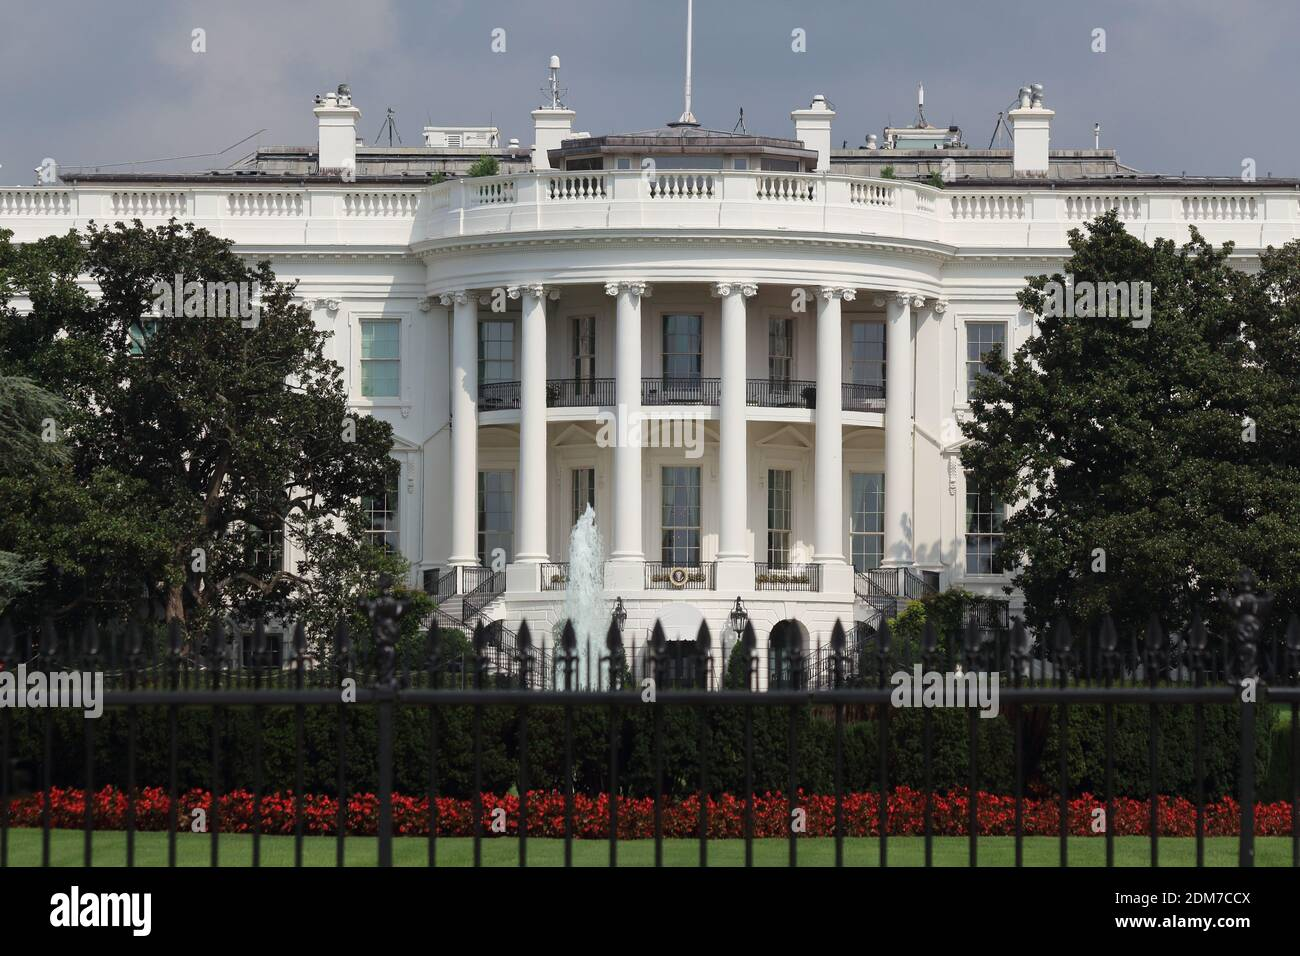 Exterior shot of the West Wing of the White House containing the Oval Office, Washington DC Stock Photo